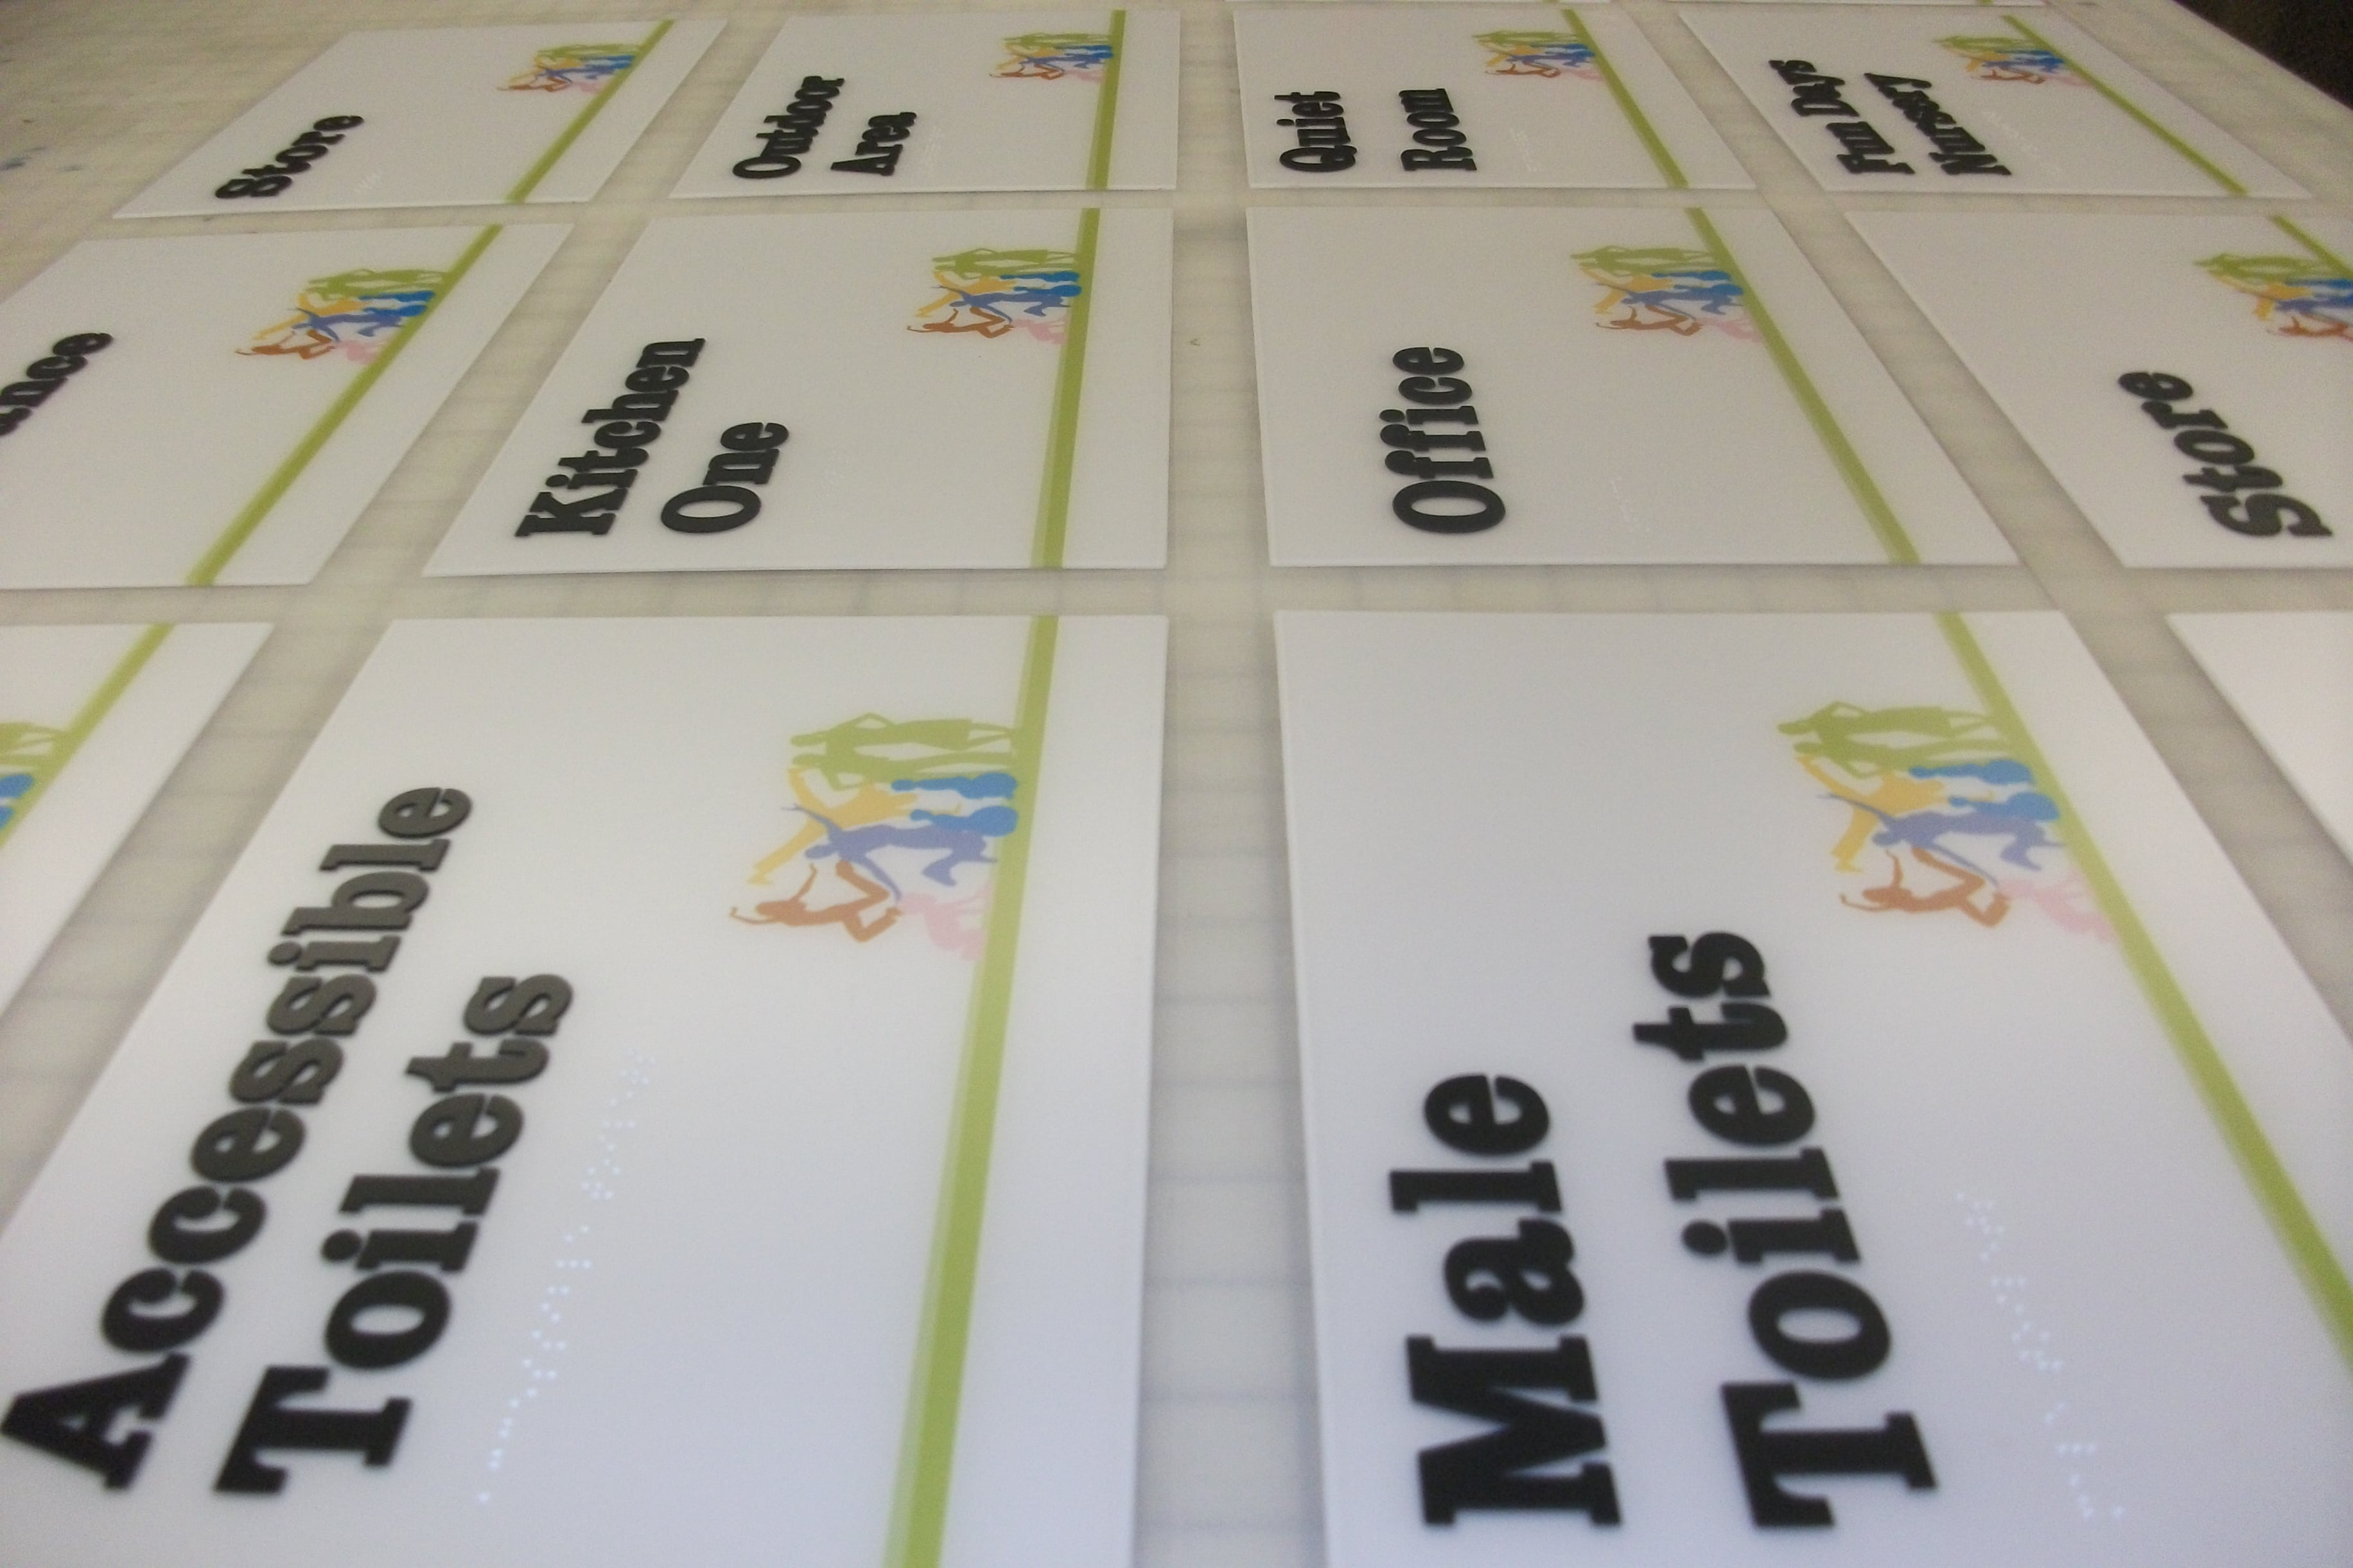 Bolton council full colour printed braille tactile signs